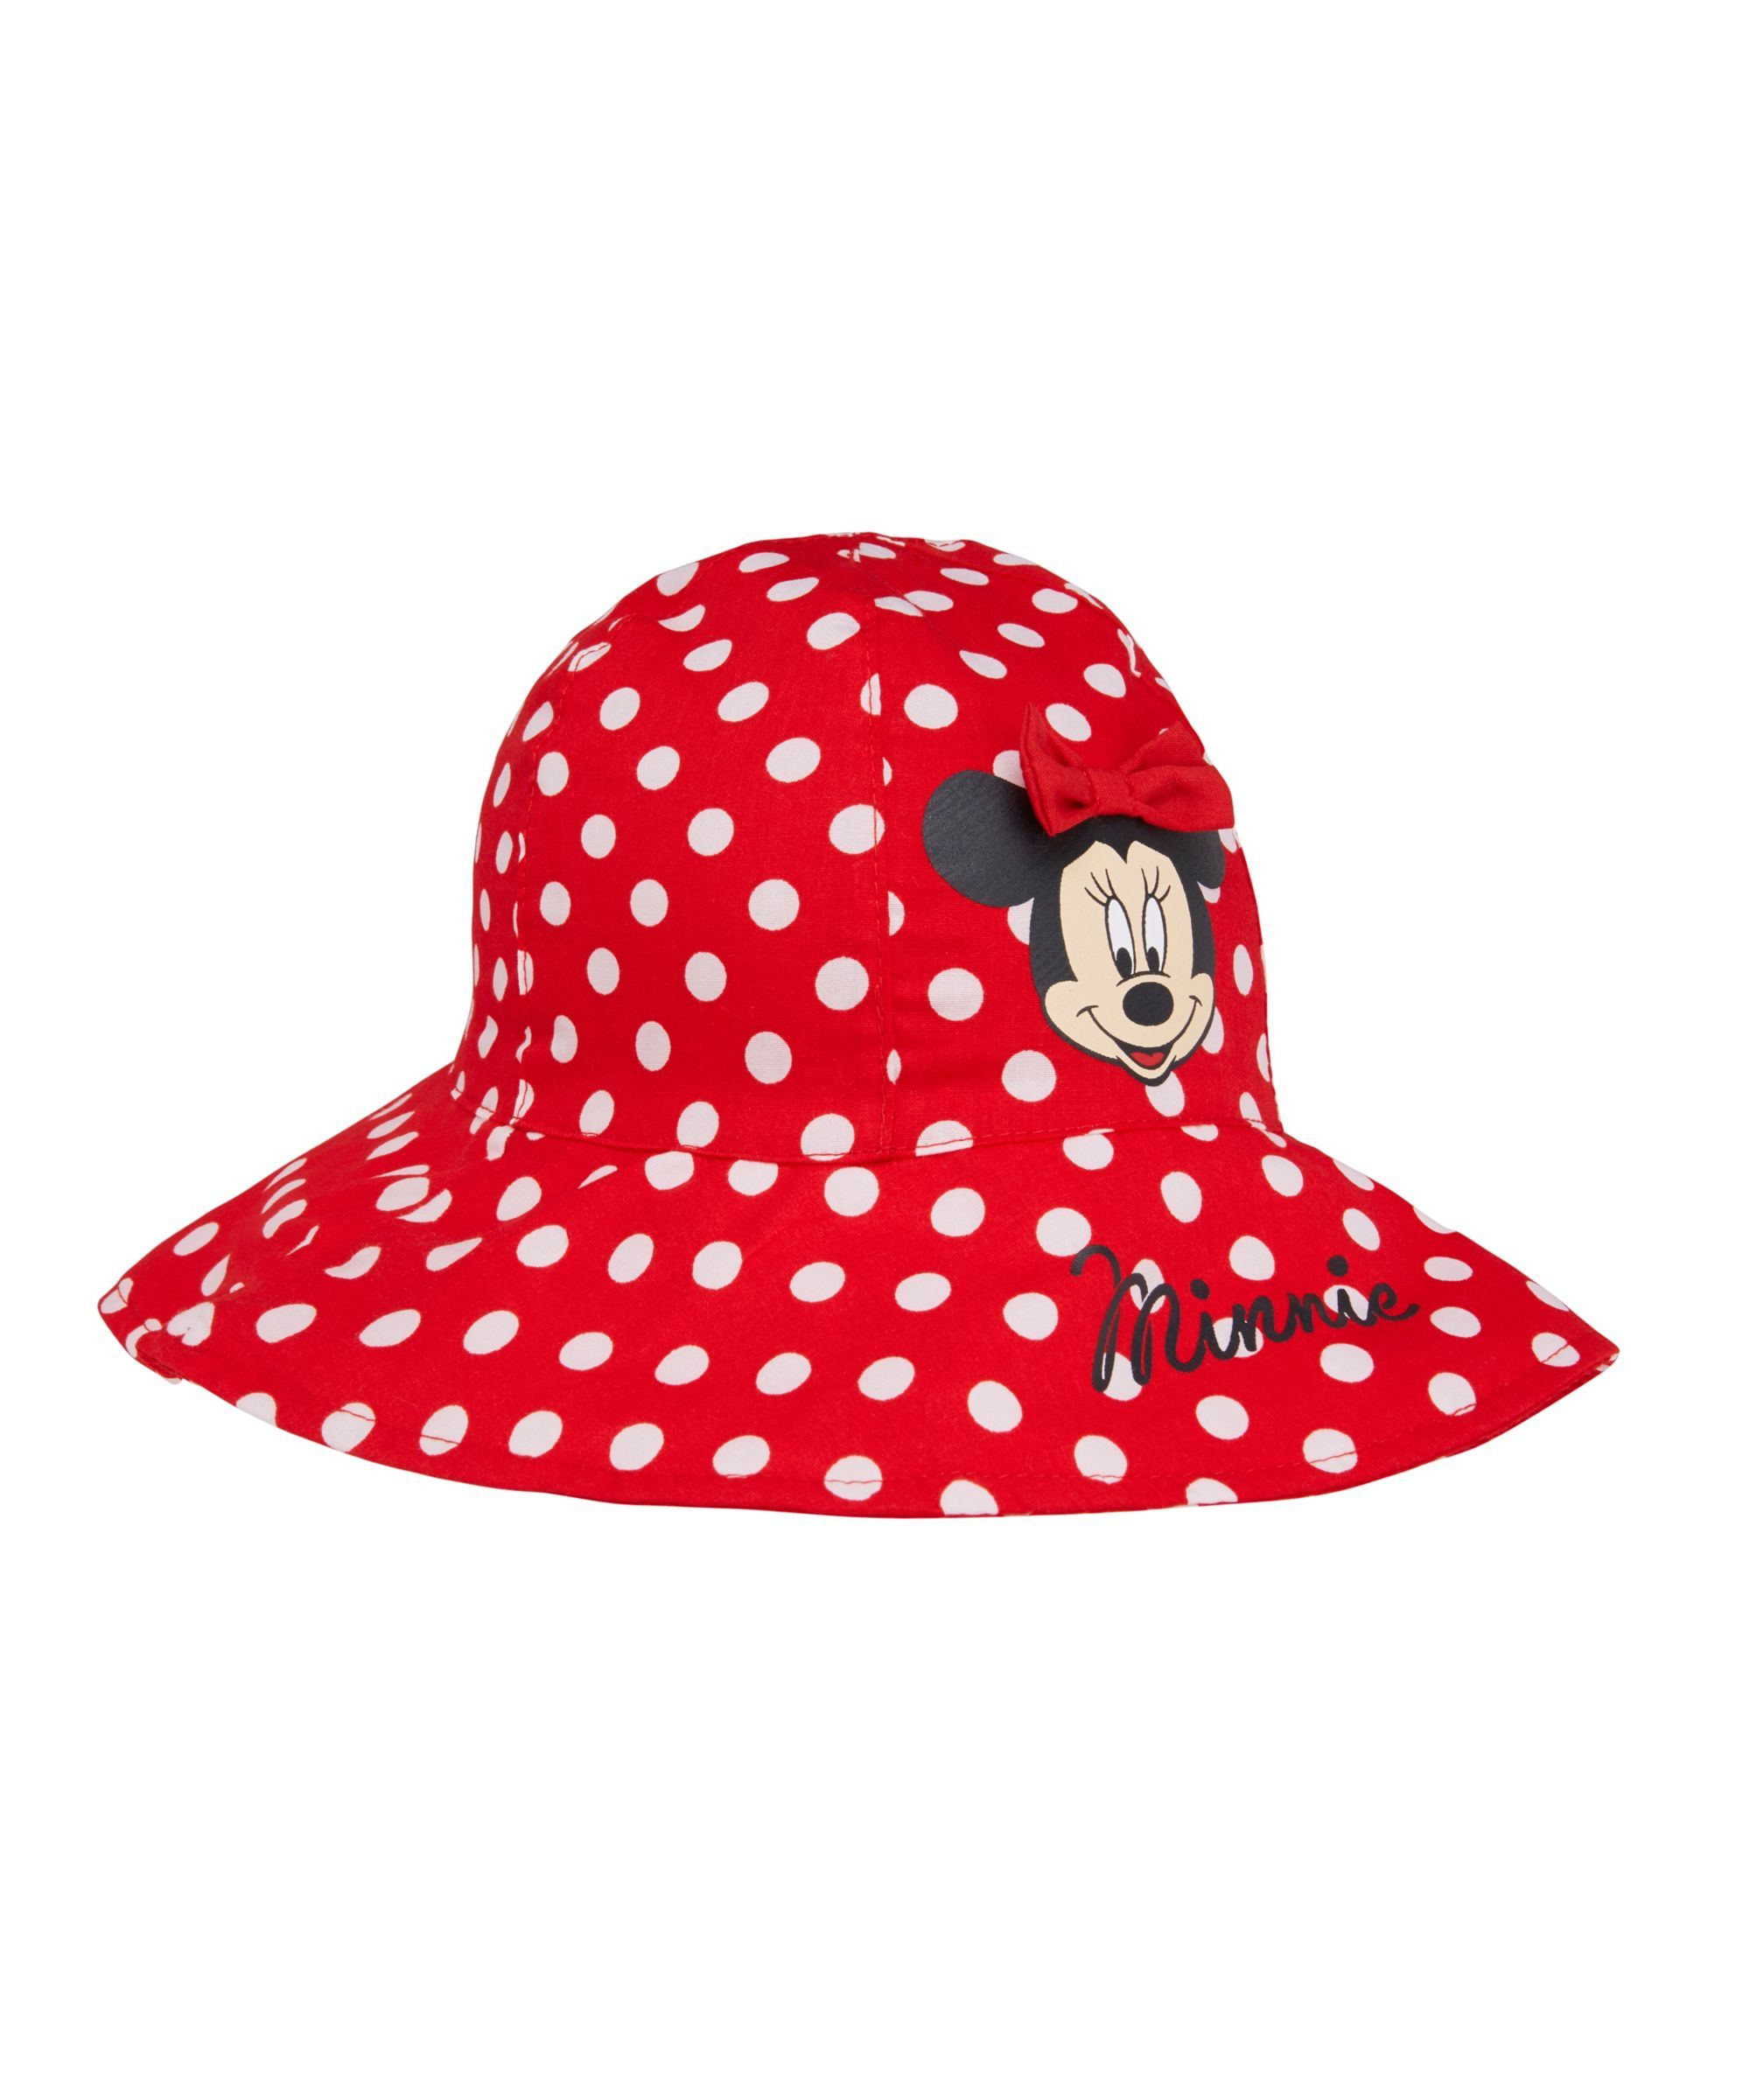 Disney Minnie Mouse Sunhat Baby Sun Hat e7ad1cbf997